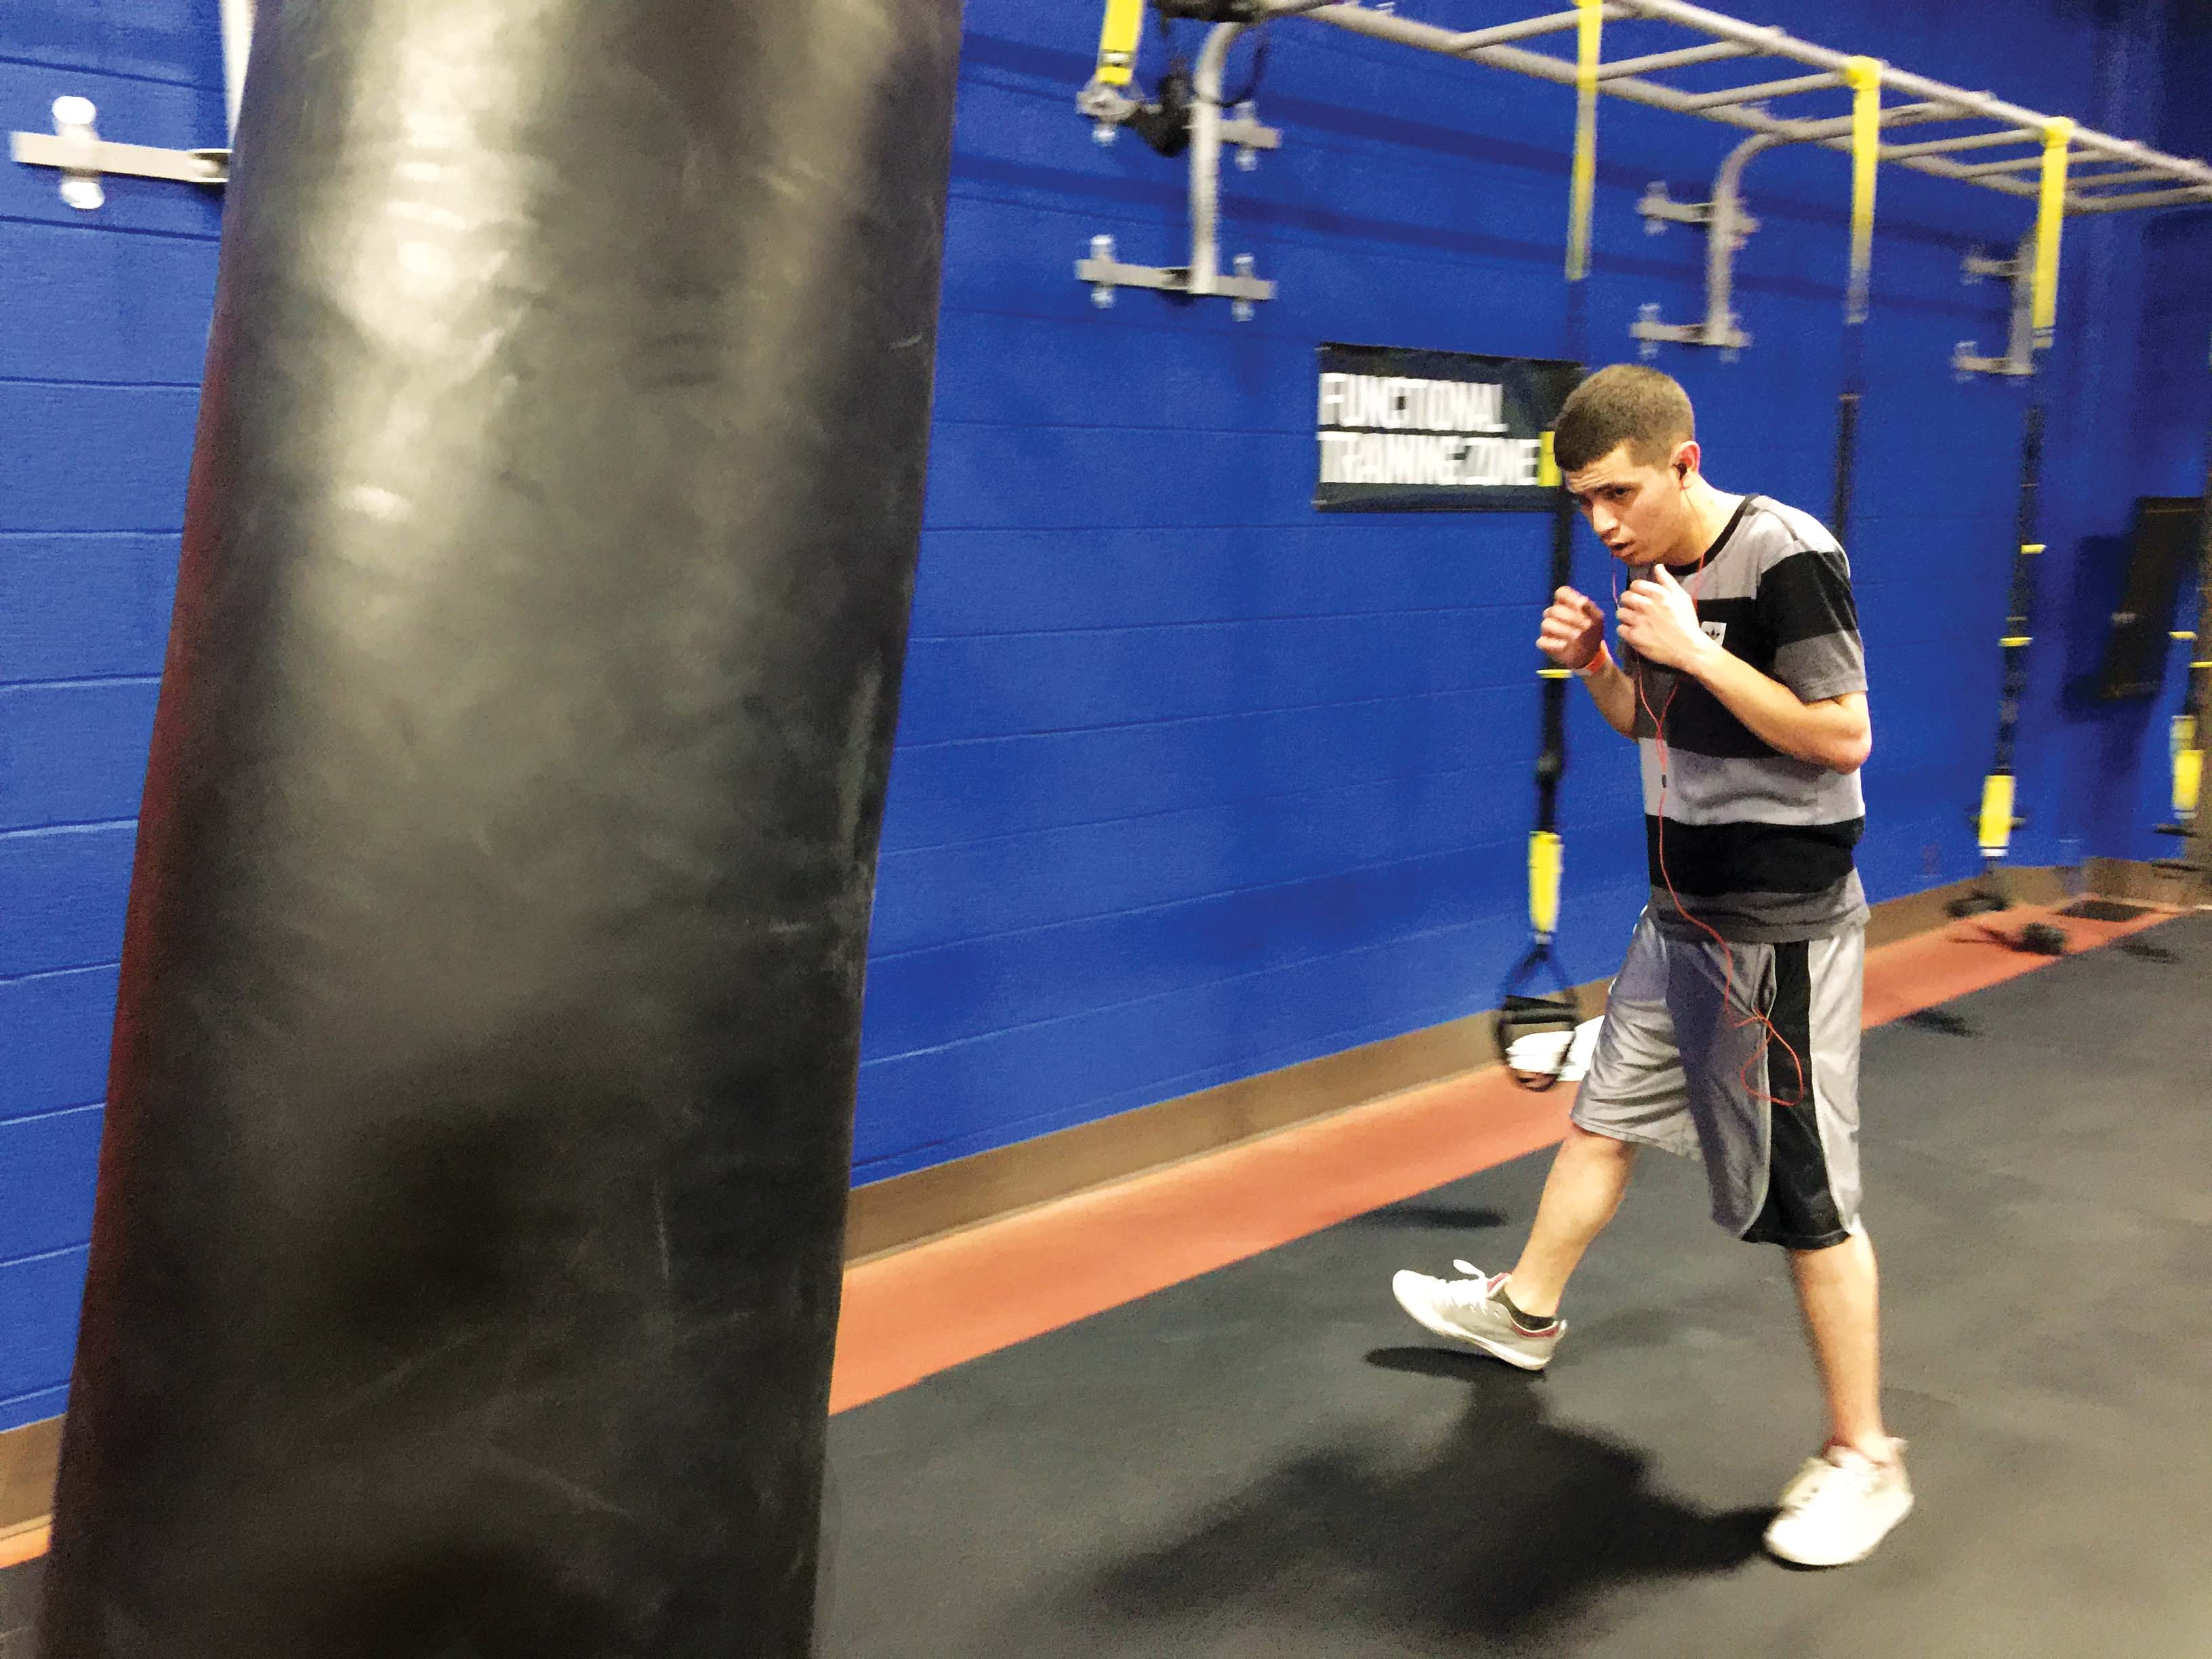 Kickboxing, a fast cardio workout